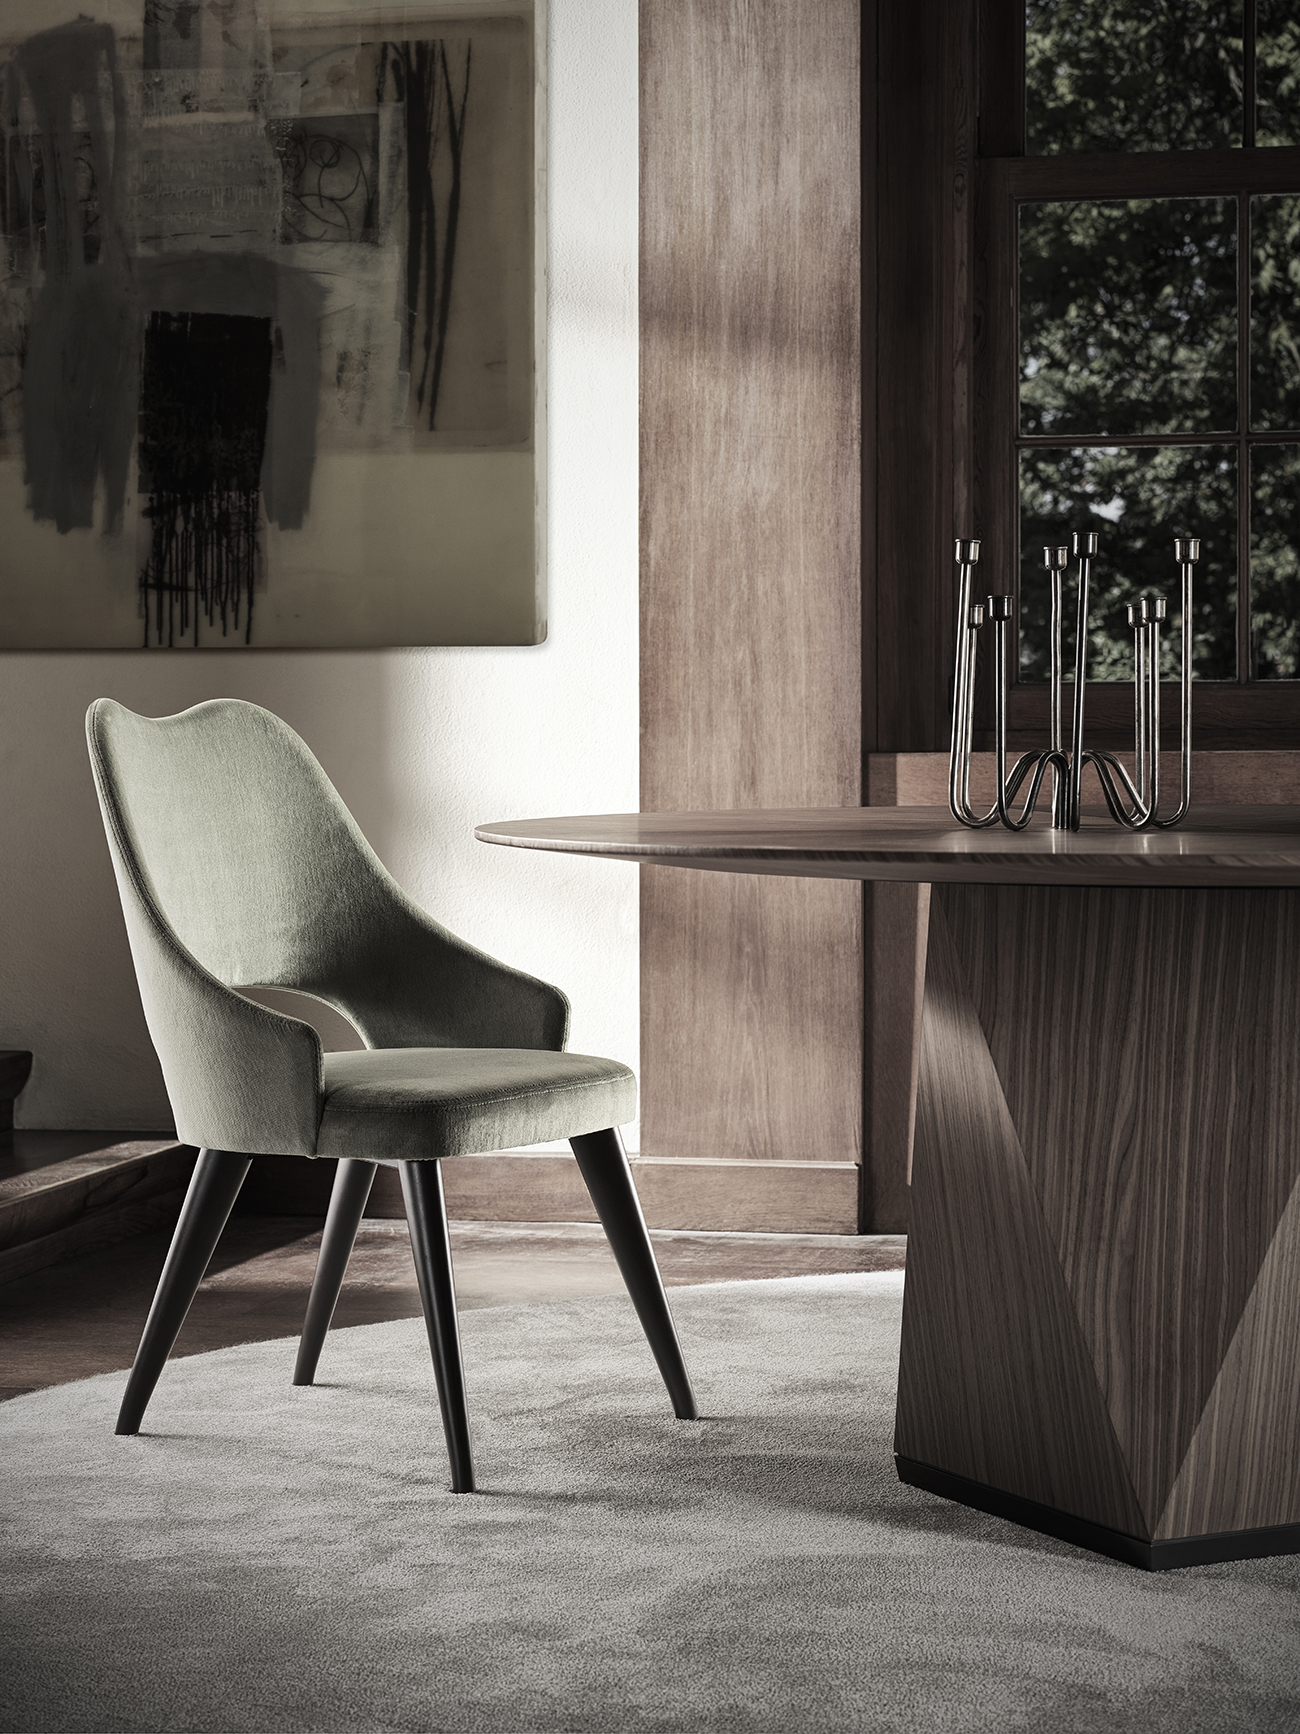 piano dining table rubelli casa navaarosio 4.jpg